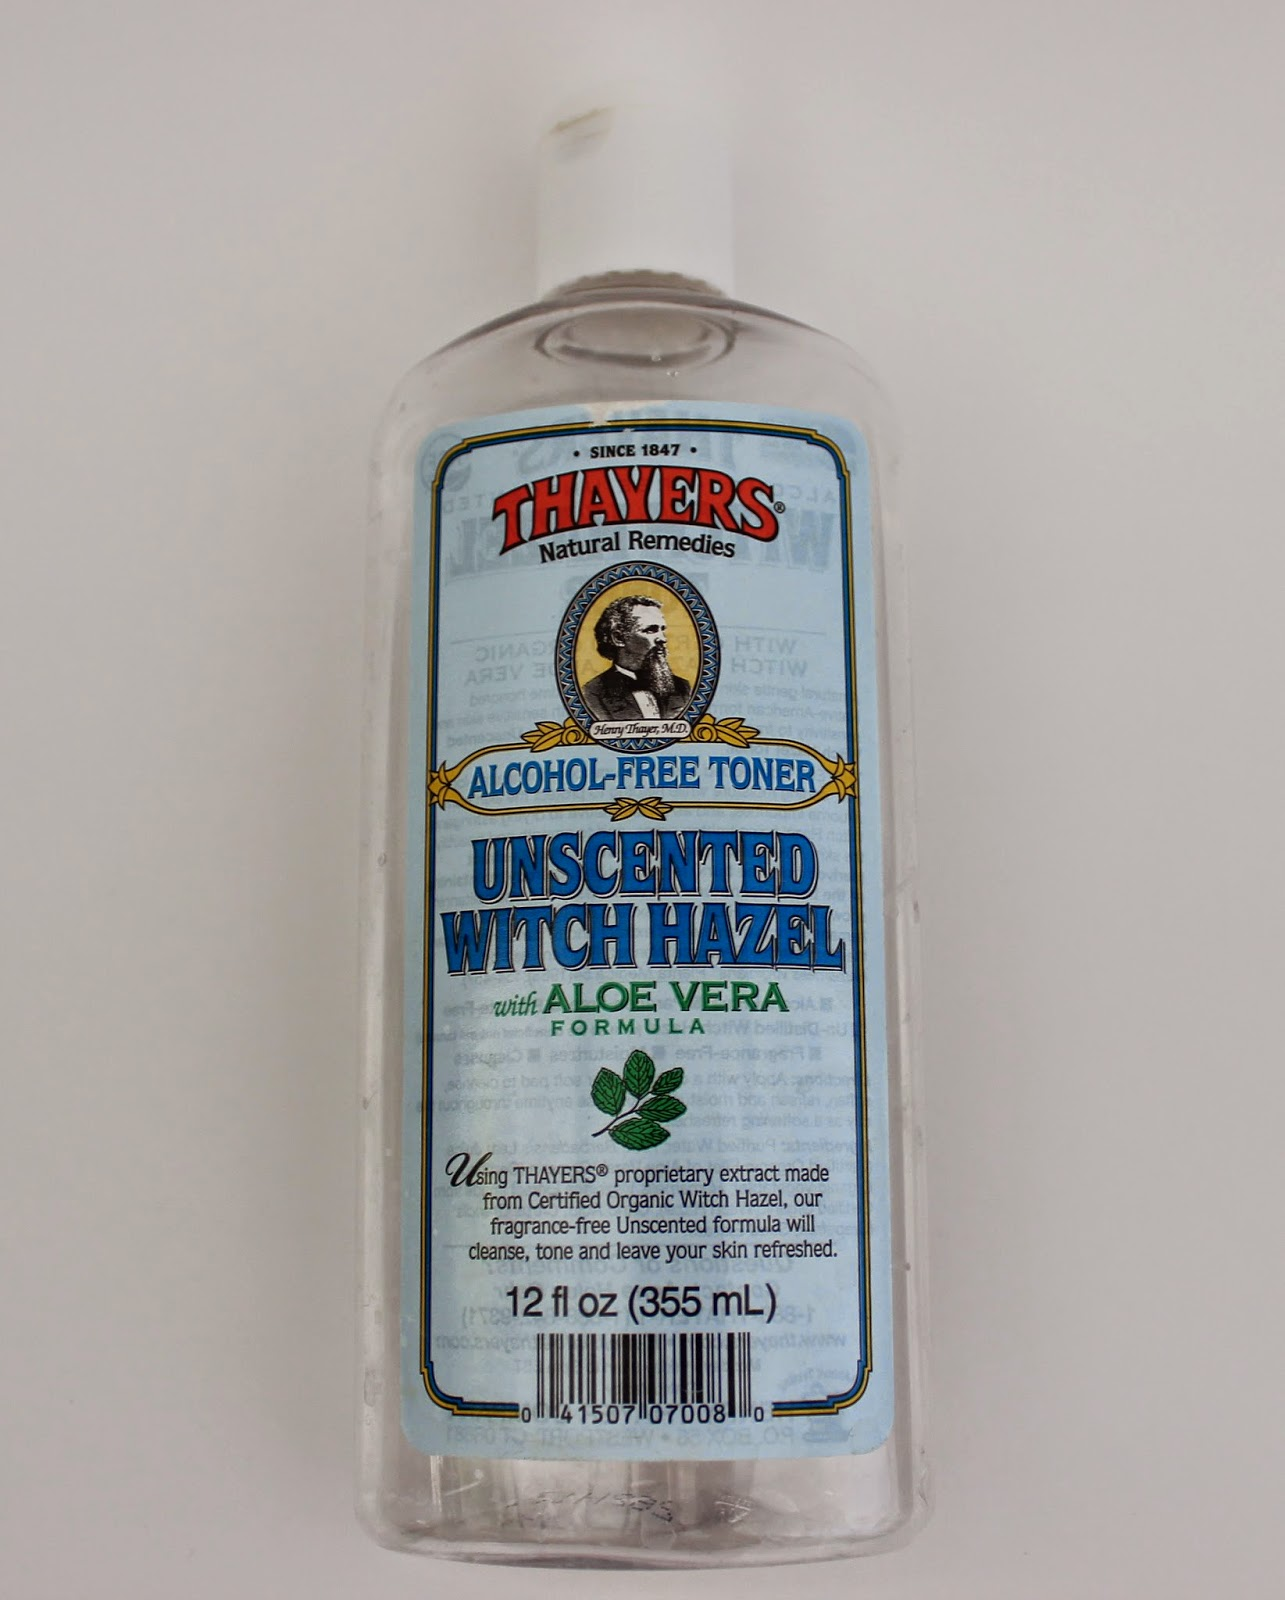 Thayers Alcohol Free Toner Unscented Witch Hazel with Aloe Vera Formula